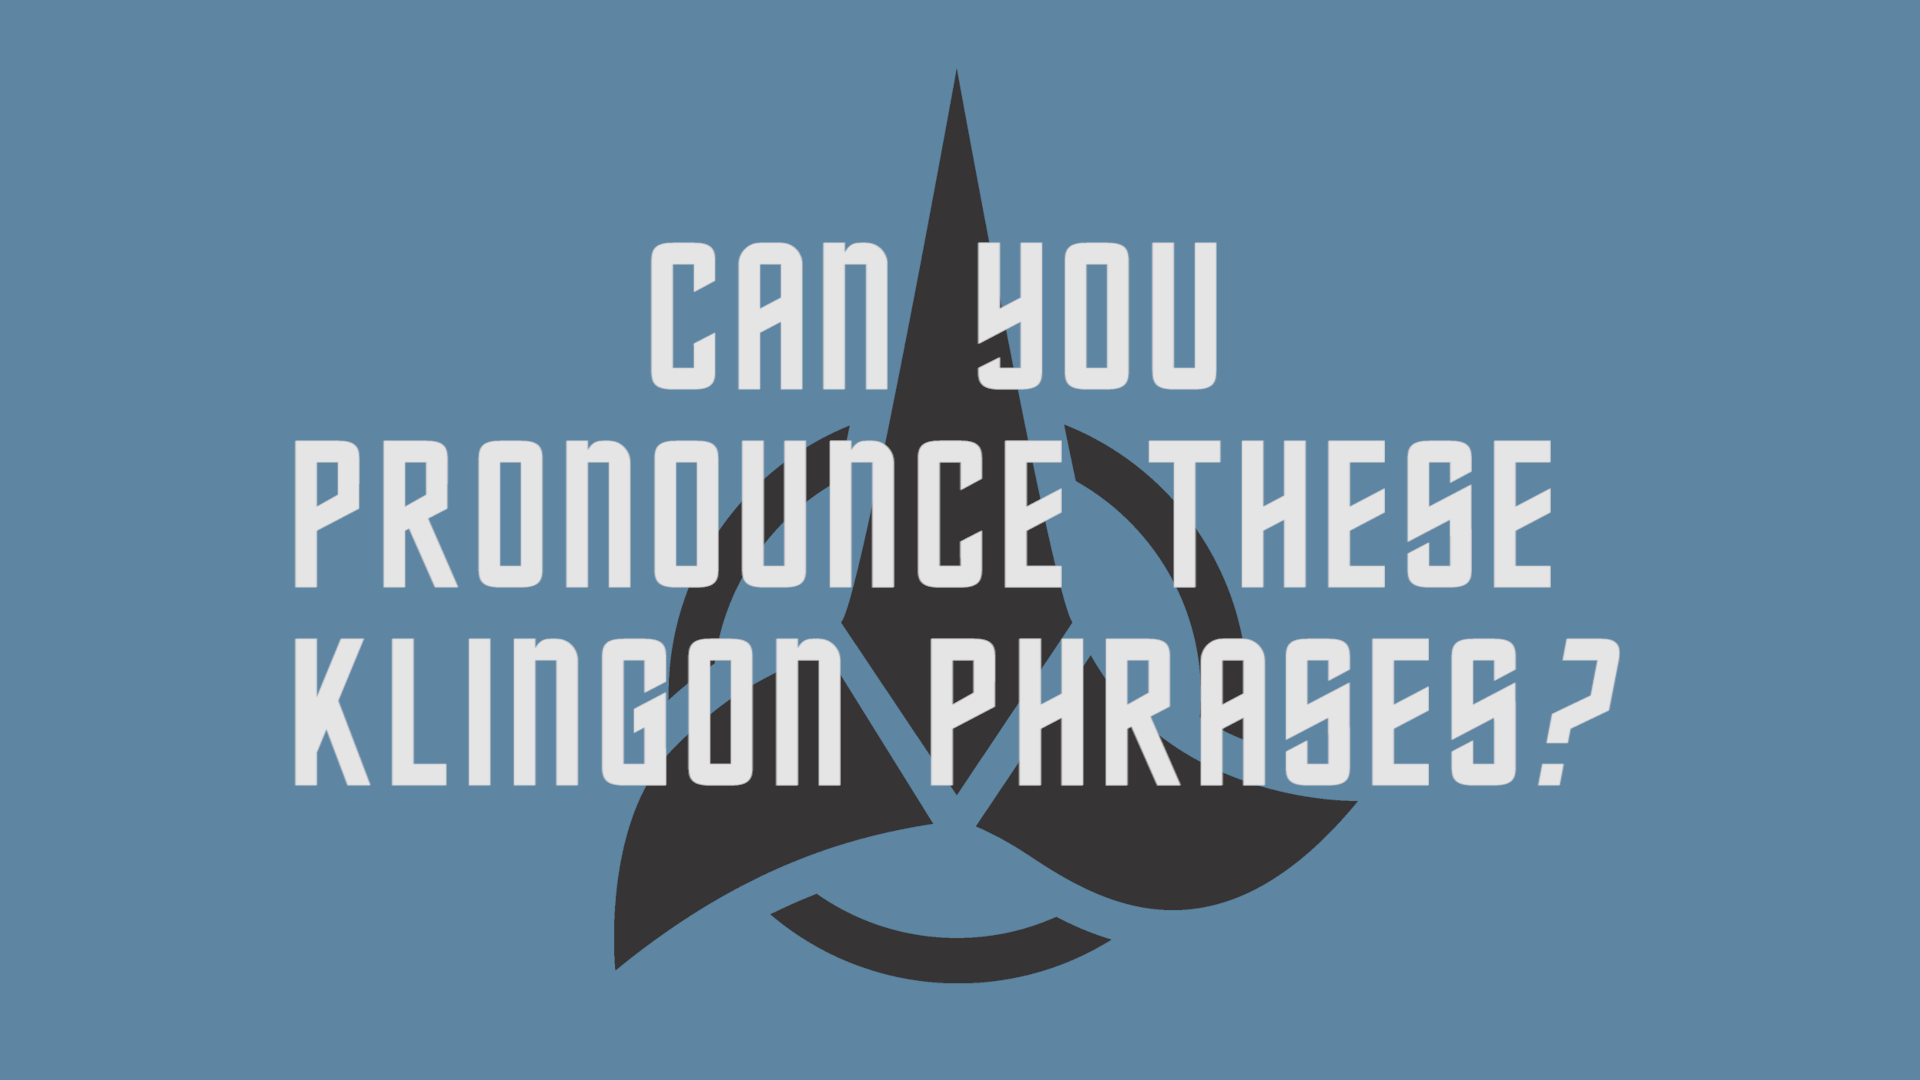 Simon & Schuster Employees Try To Pronounce Klingon Phrases